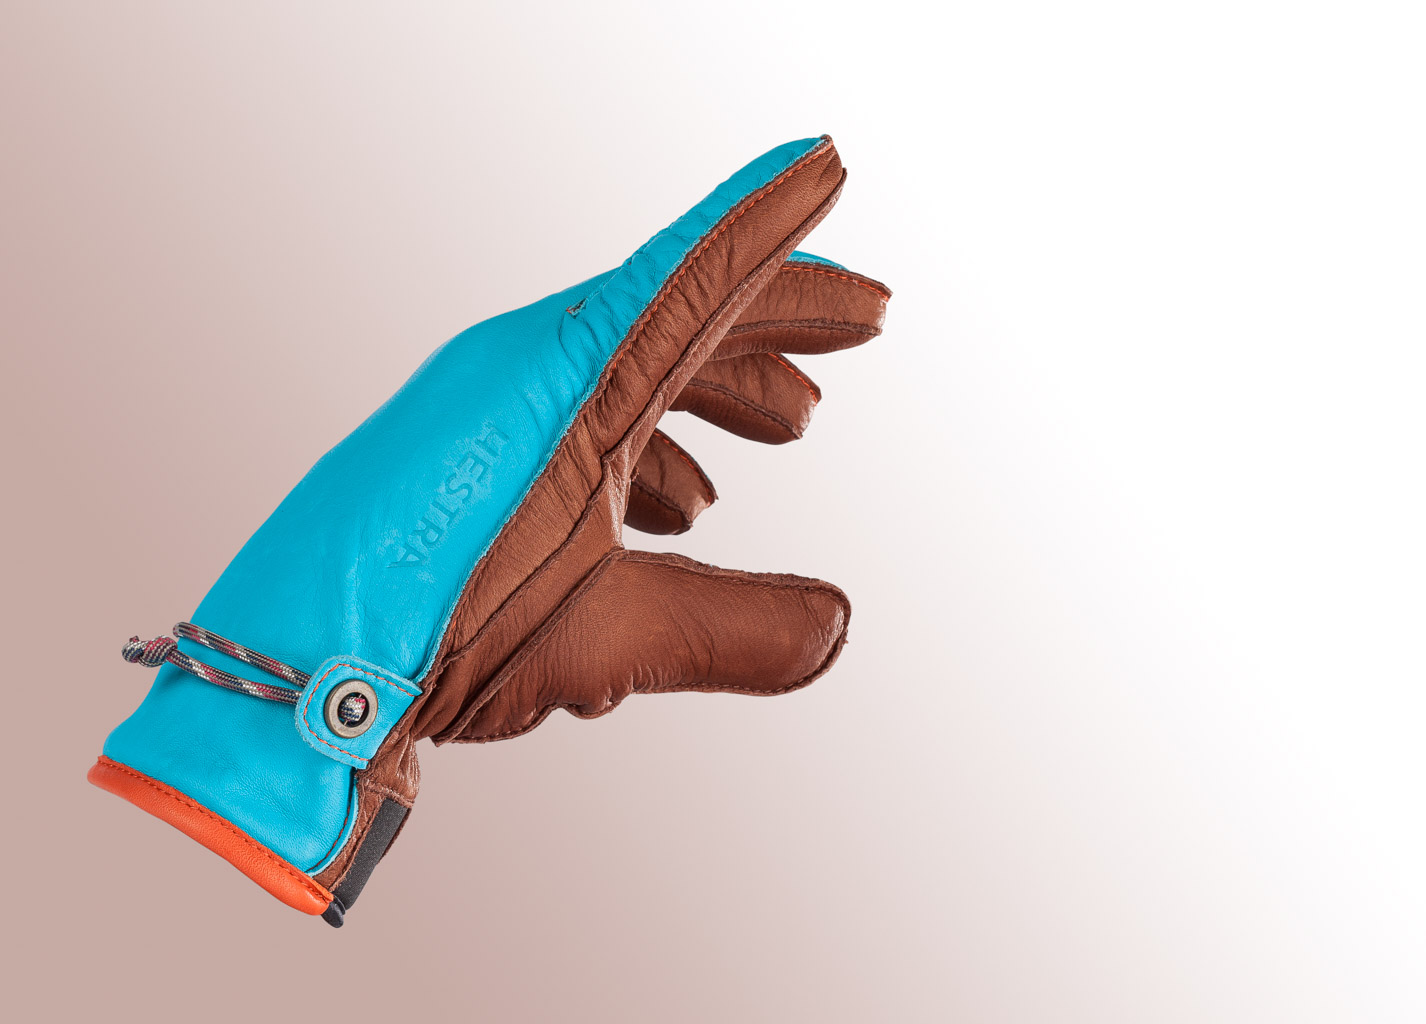 Hestra glove on solid white background for editorial use.